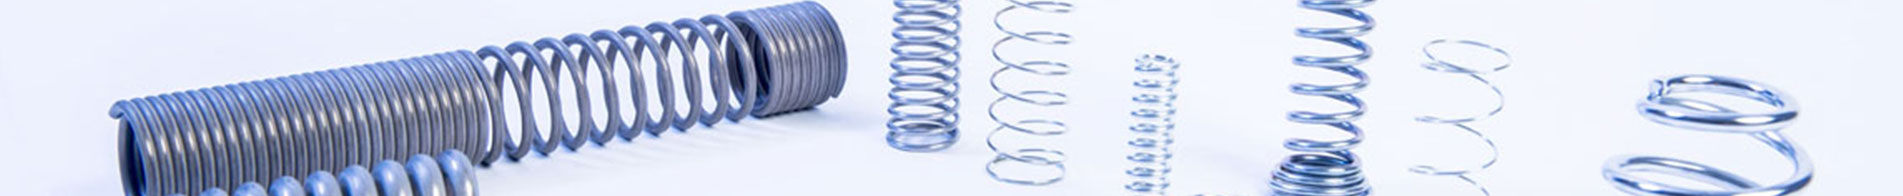 compression springs in banner image